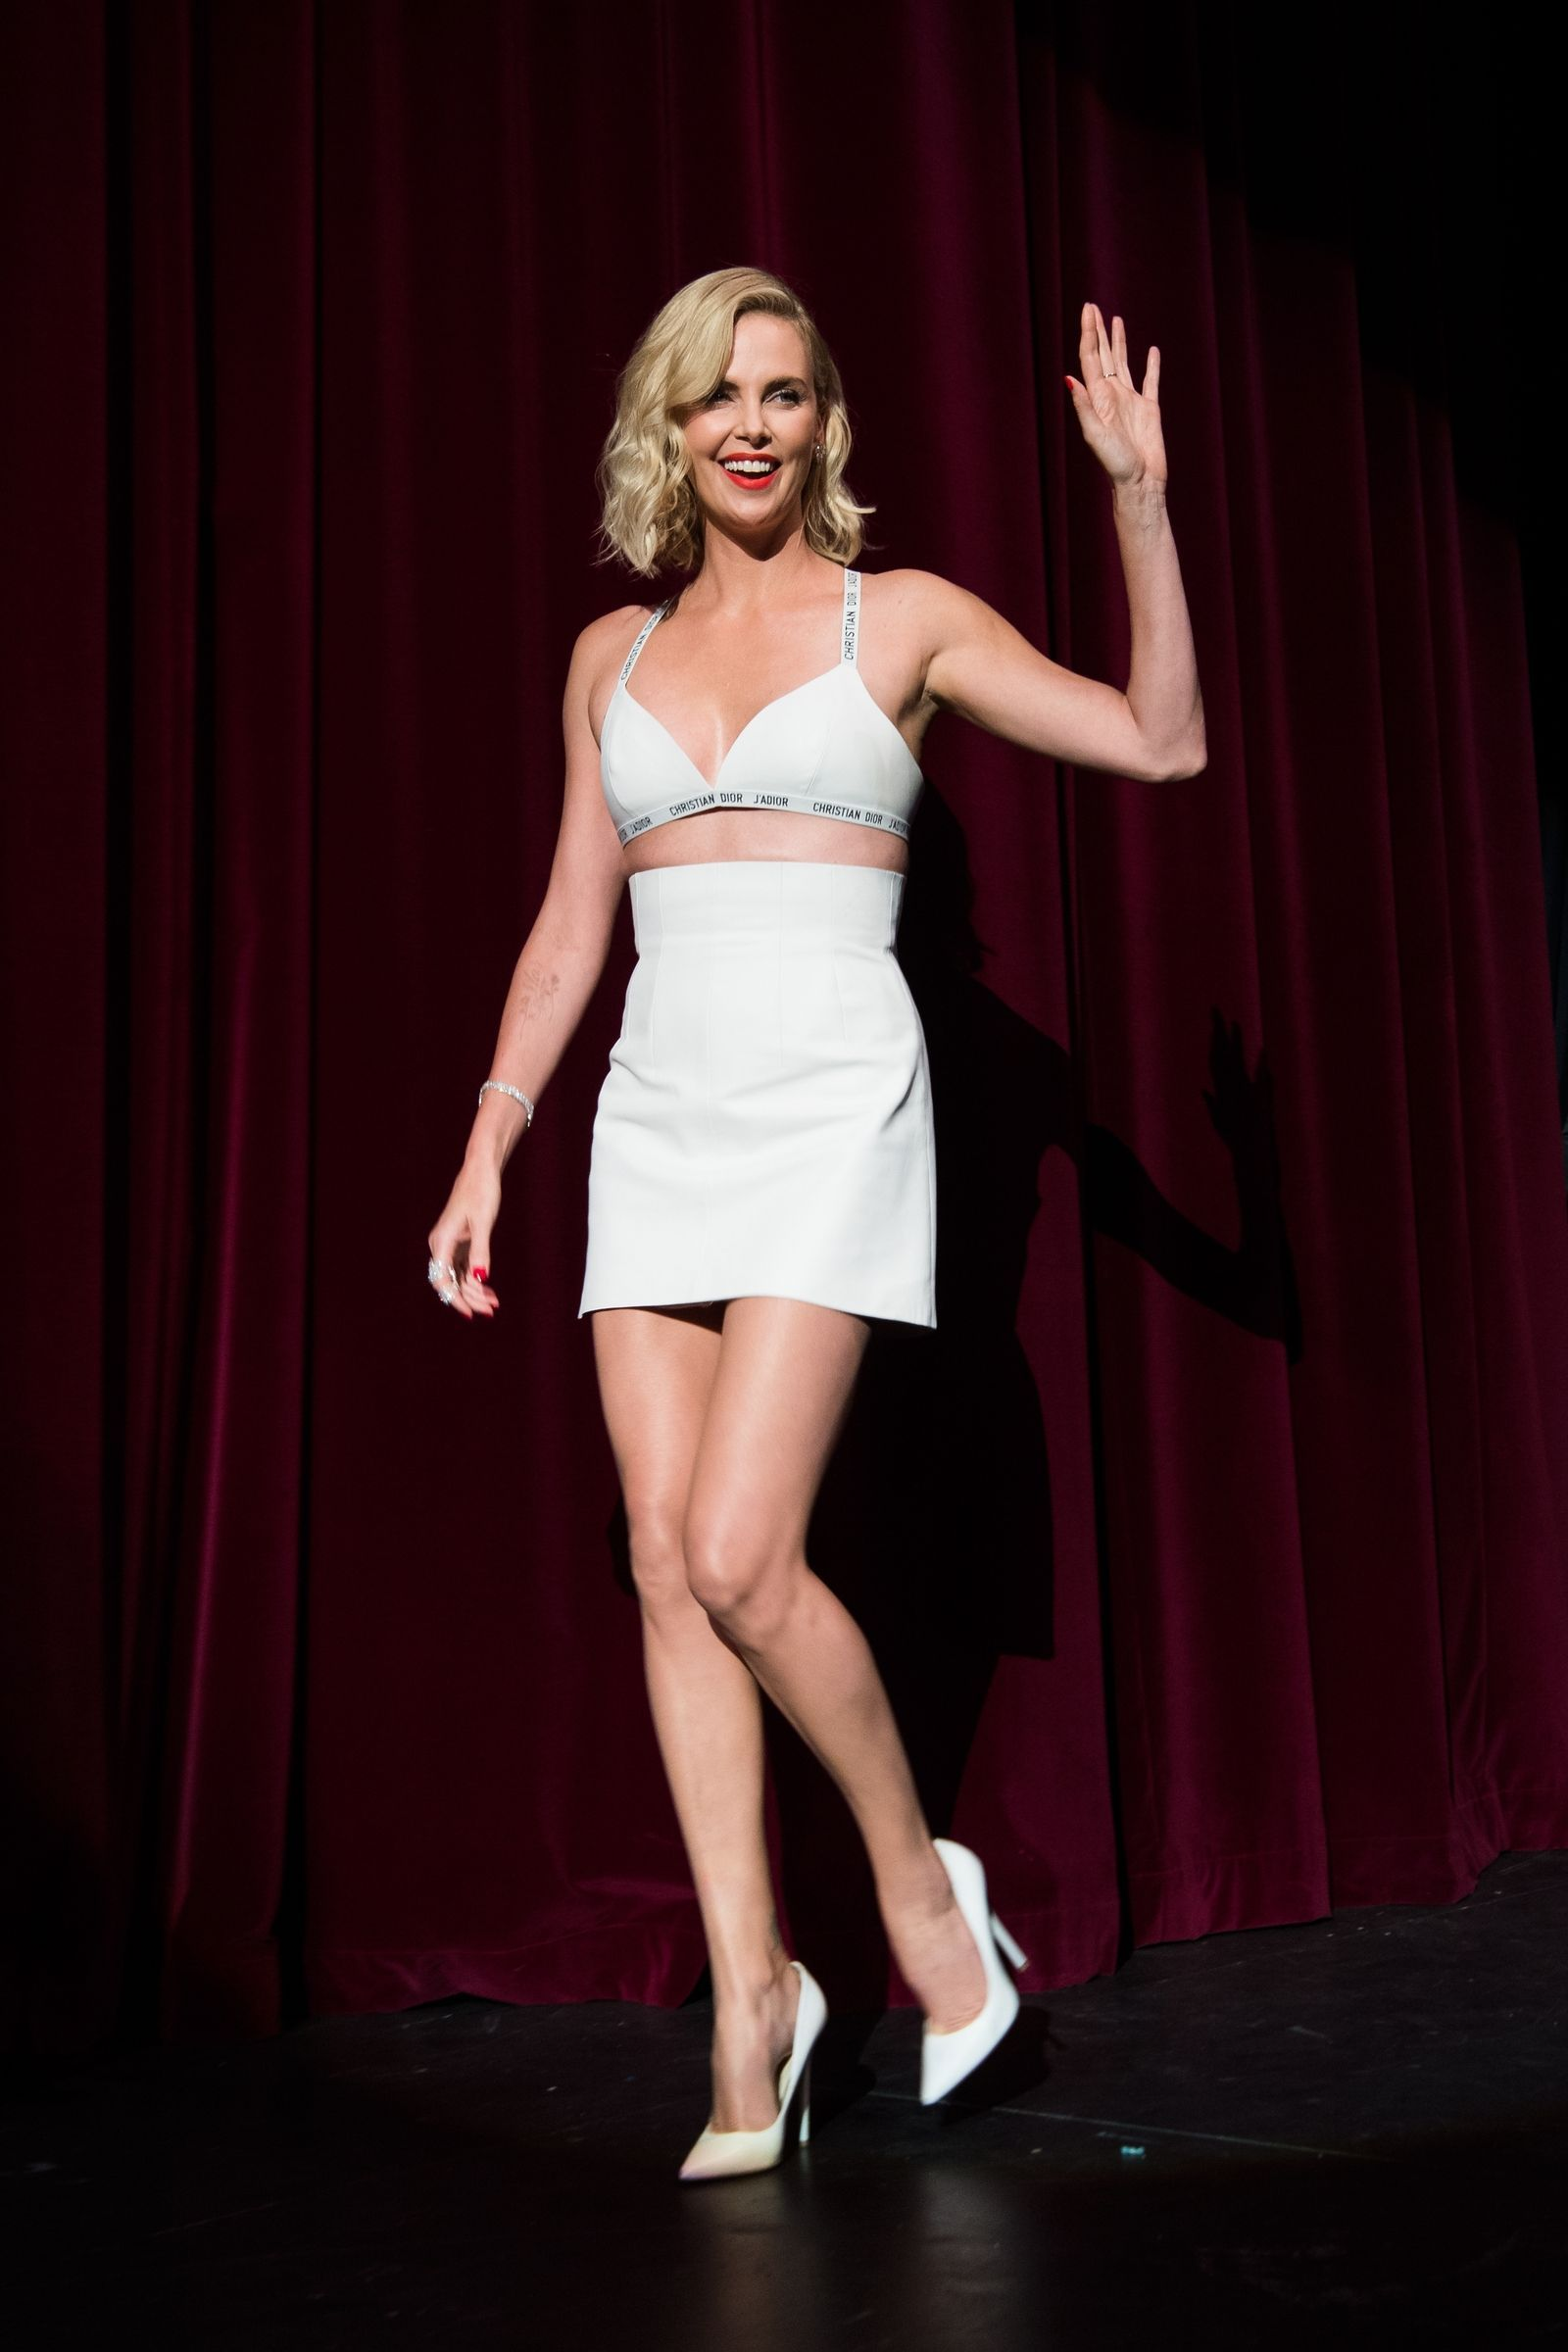 538ad0ee4f806 Charlize Theron Wore Nothing But A Dior Bra   Mini Skirt On The Red Carpet  - HarpersBAZAAR.com